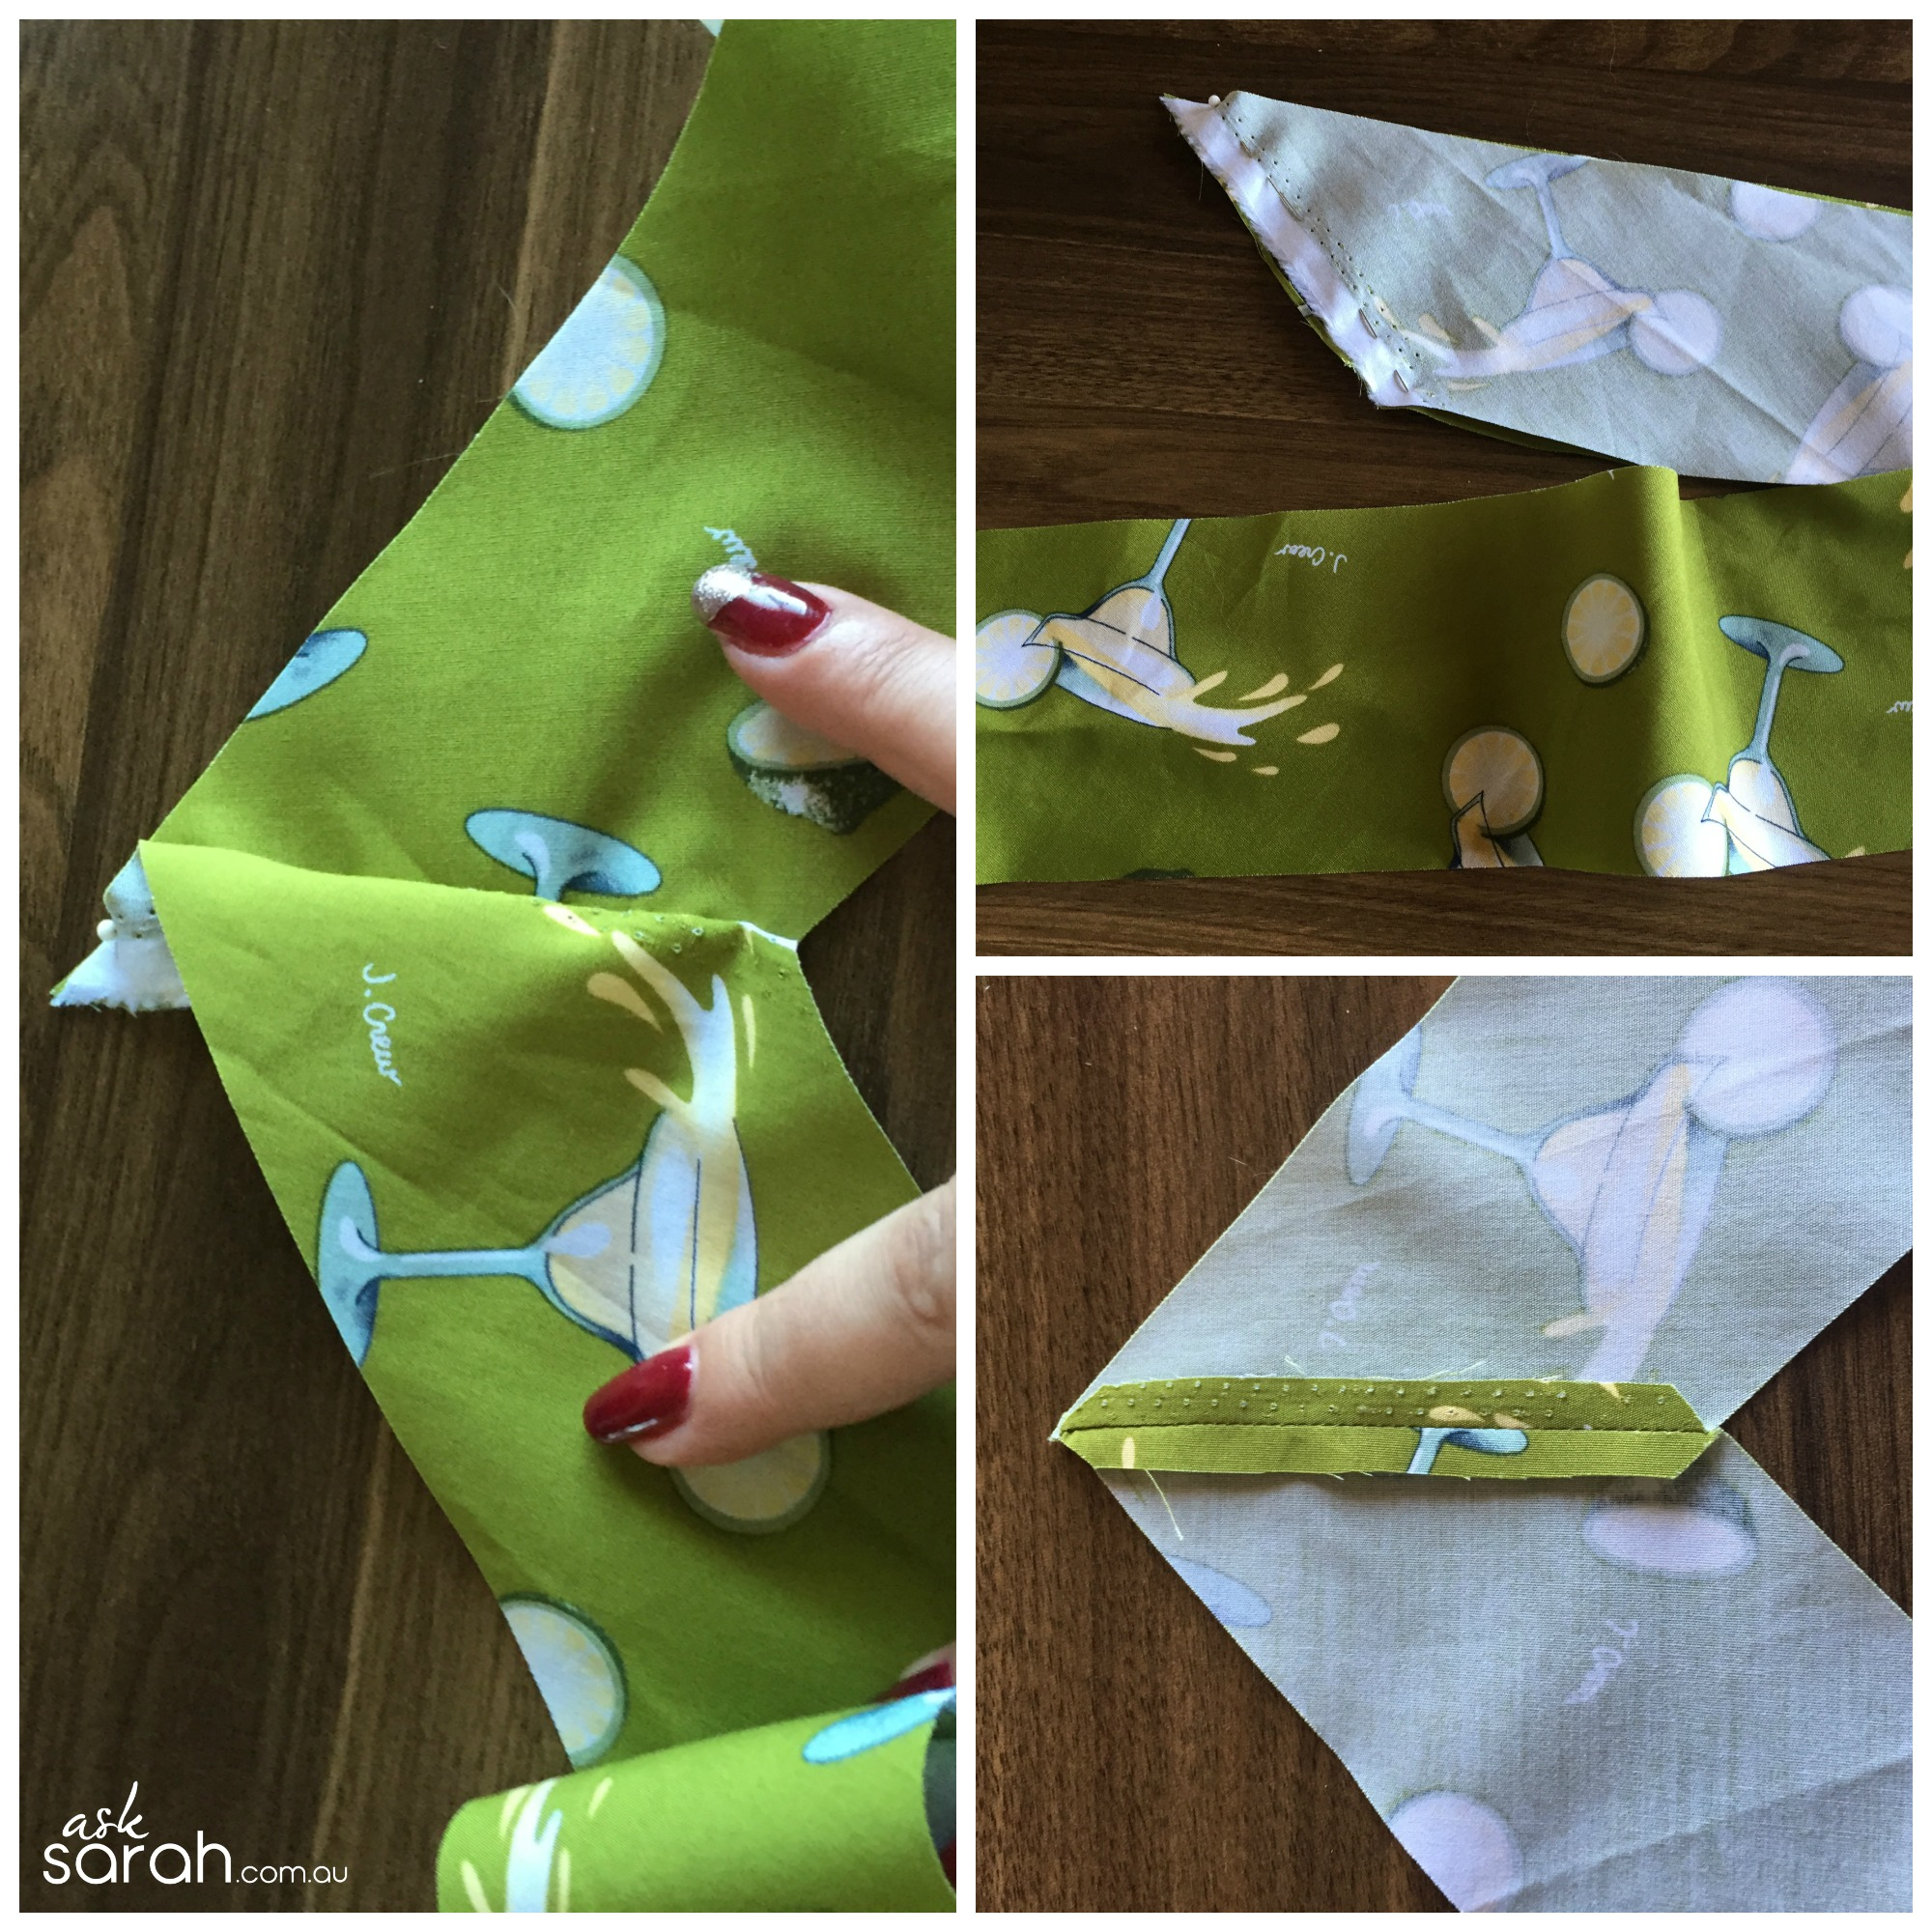 Sew: Removable Retro Décolleté Collar & Halter Strap Tutorial {Turn A Sweetheart Top Into 50's Style Top And Back Again}